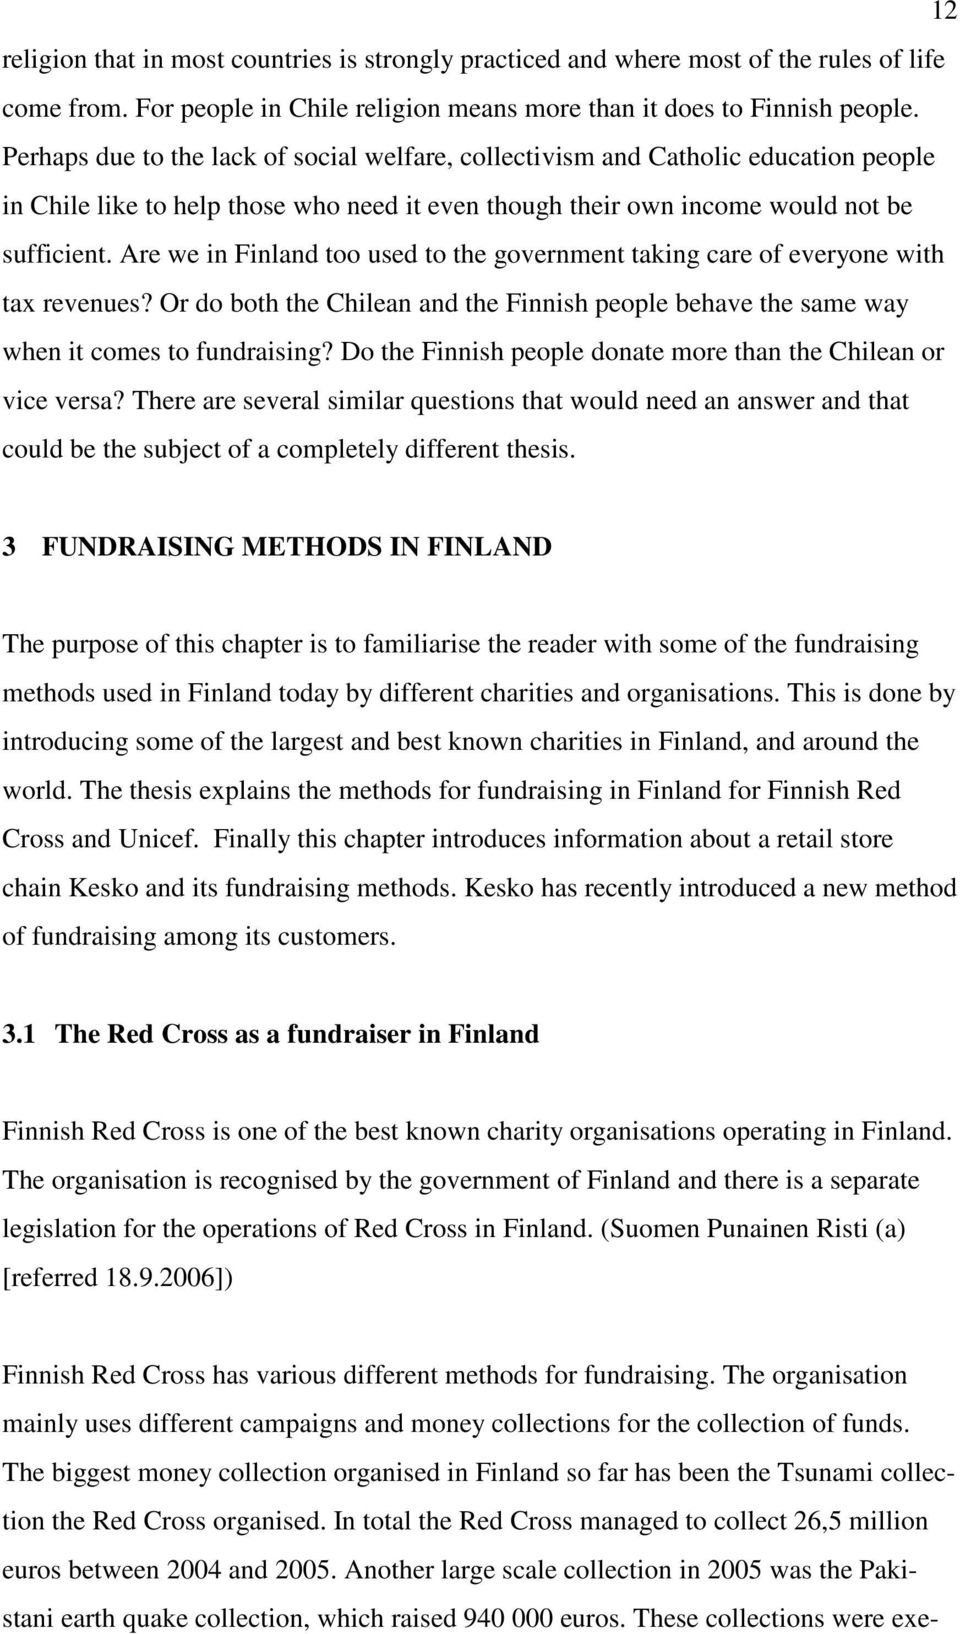 Are we in Finland too used to the government taking care of everyone with tax revenues? Or do both the Chilean and the Finnish people behave the same way when it comes to fundraising?